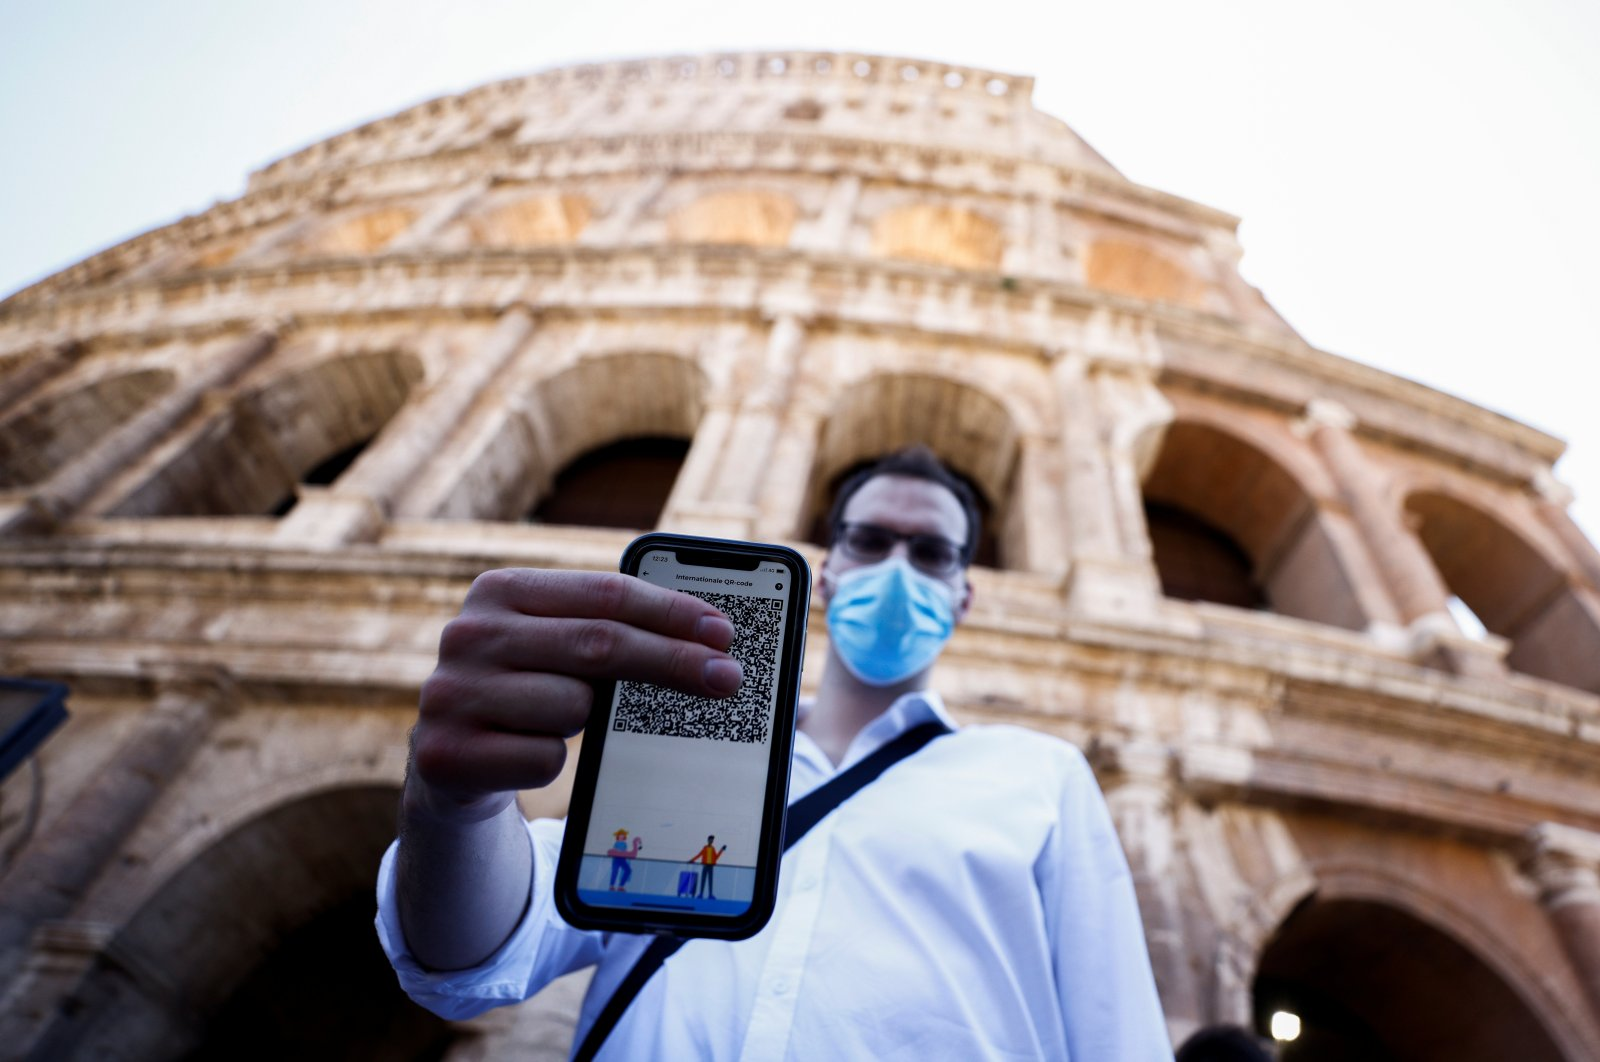 A man shows his Green Pass (health pass) before entering the Colosseum as Italy brings in tougher restrictions where proof of immunity will be required to access an array of services and leisure activities in Rome, Italy, August 6, 2021. (Reuters Photo)